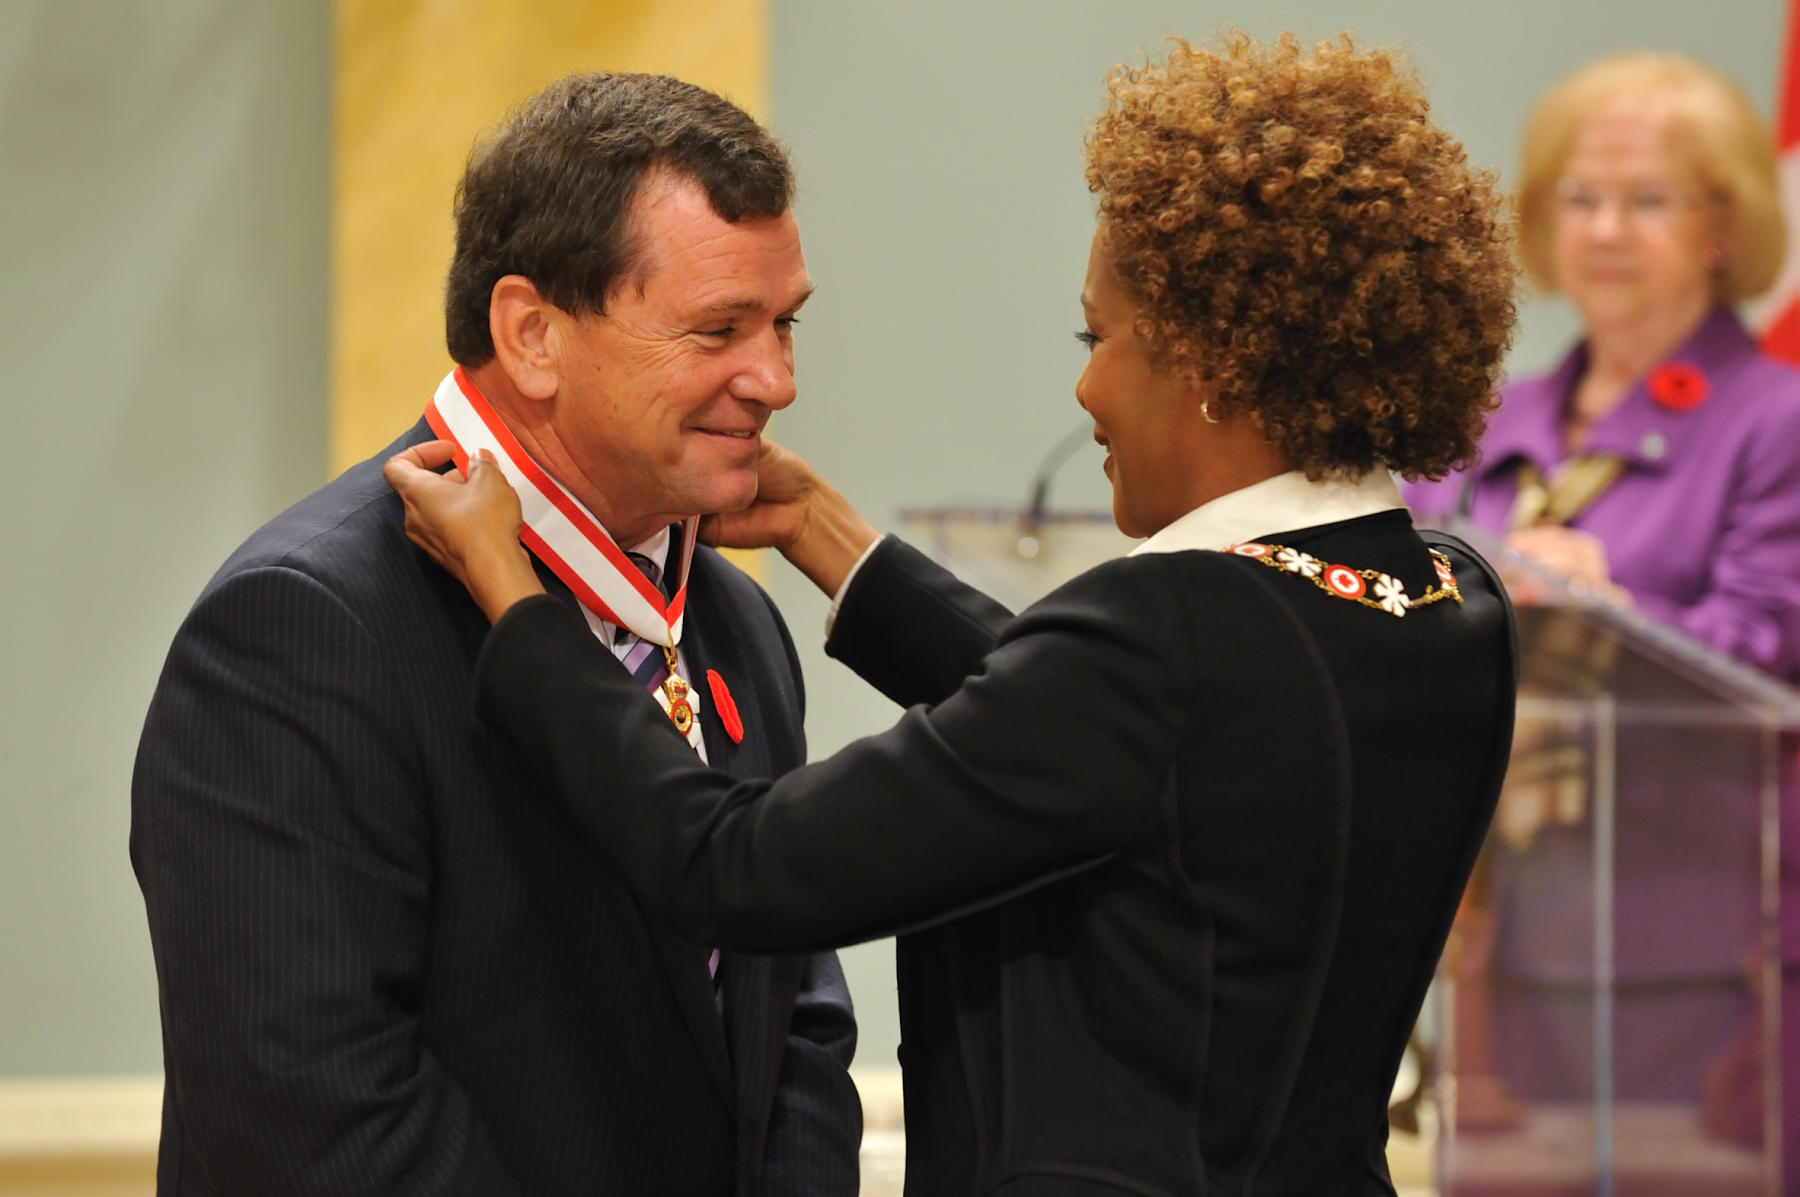 Her Excellency the Right Honourable Michaëlle Jean, Governor General of Canada, presented the insignia of Officer of the Order of Canada to Frank McKenna, P.C., O.C., O.N.B. a highly respected public figure.